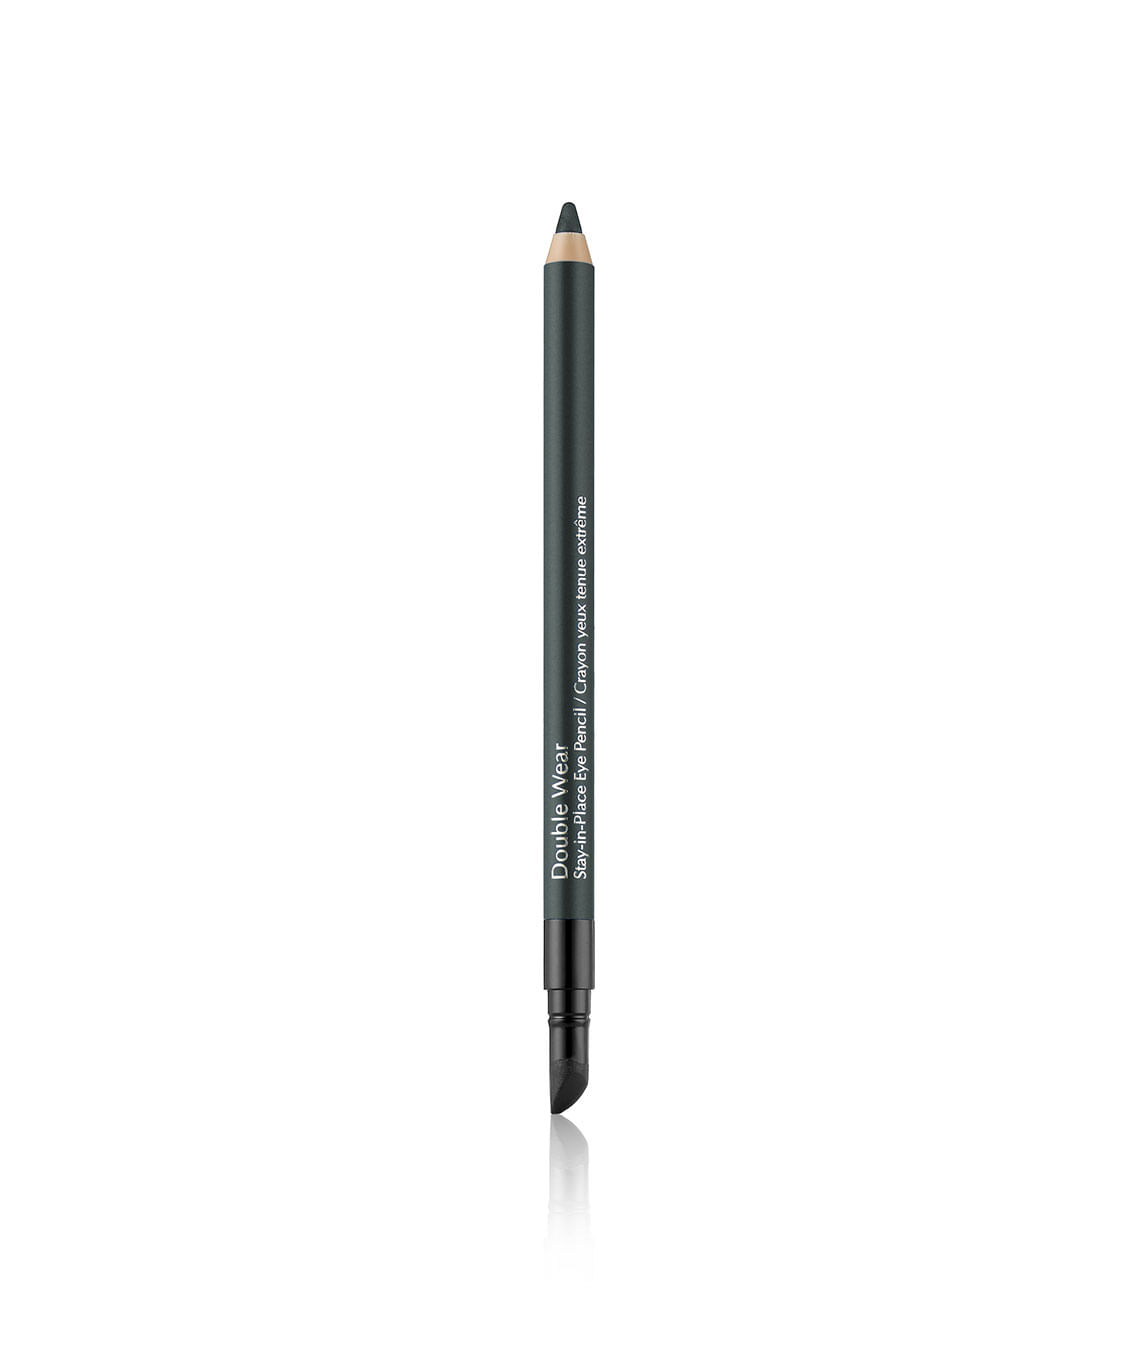 Delineador Double Wear Stay in Place eye Pencil 03 Smoke 1 2 g